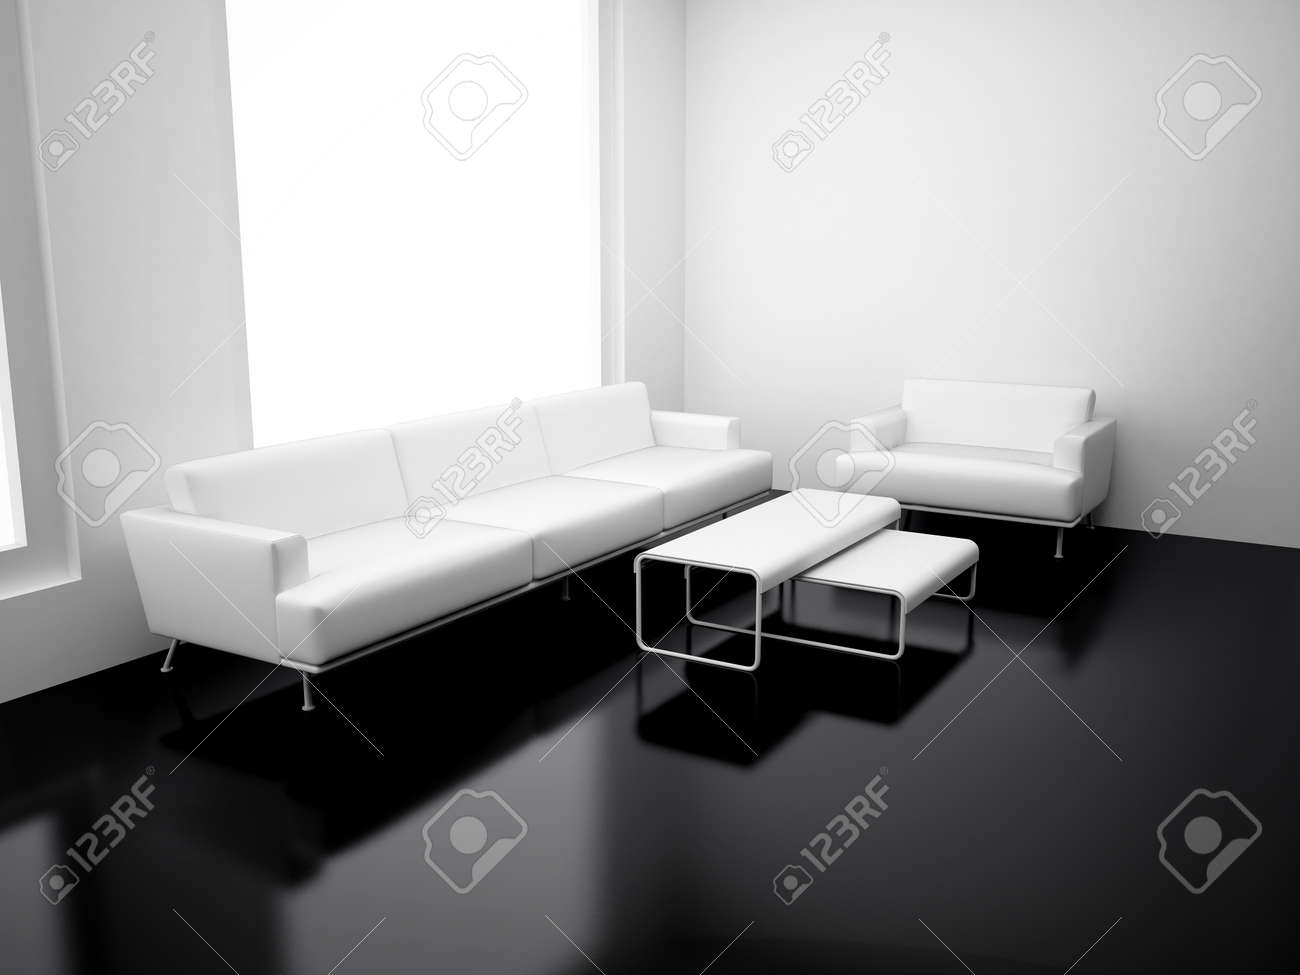 Modern Apartment With Living Room. High Resolution Image. 3d Render. Stock  Photo   Part 3